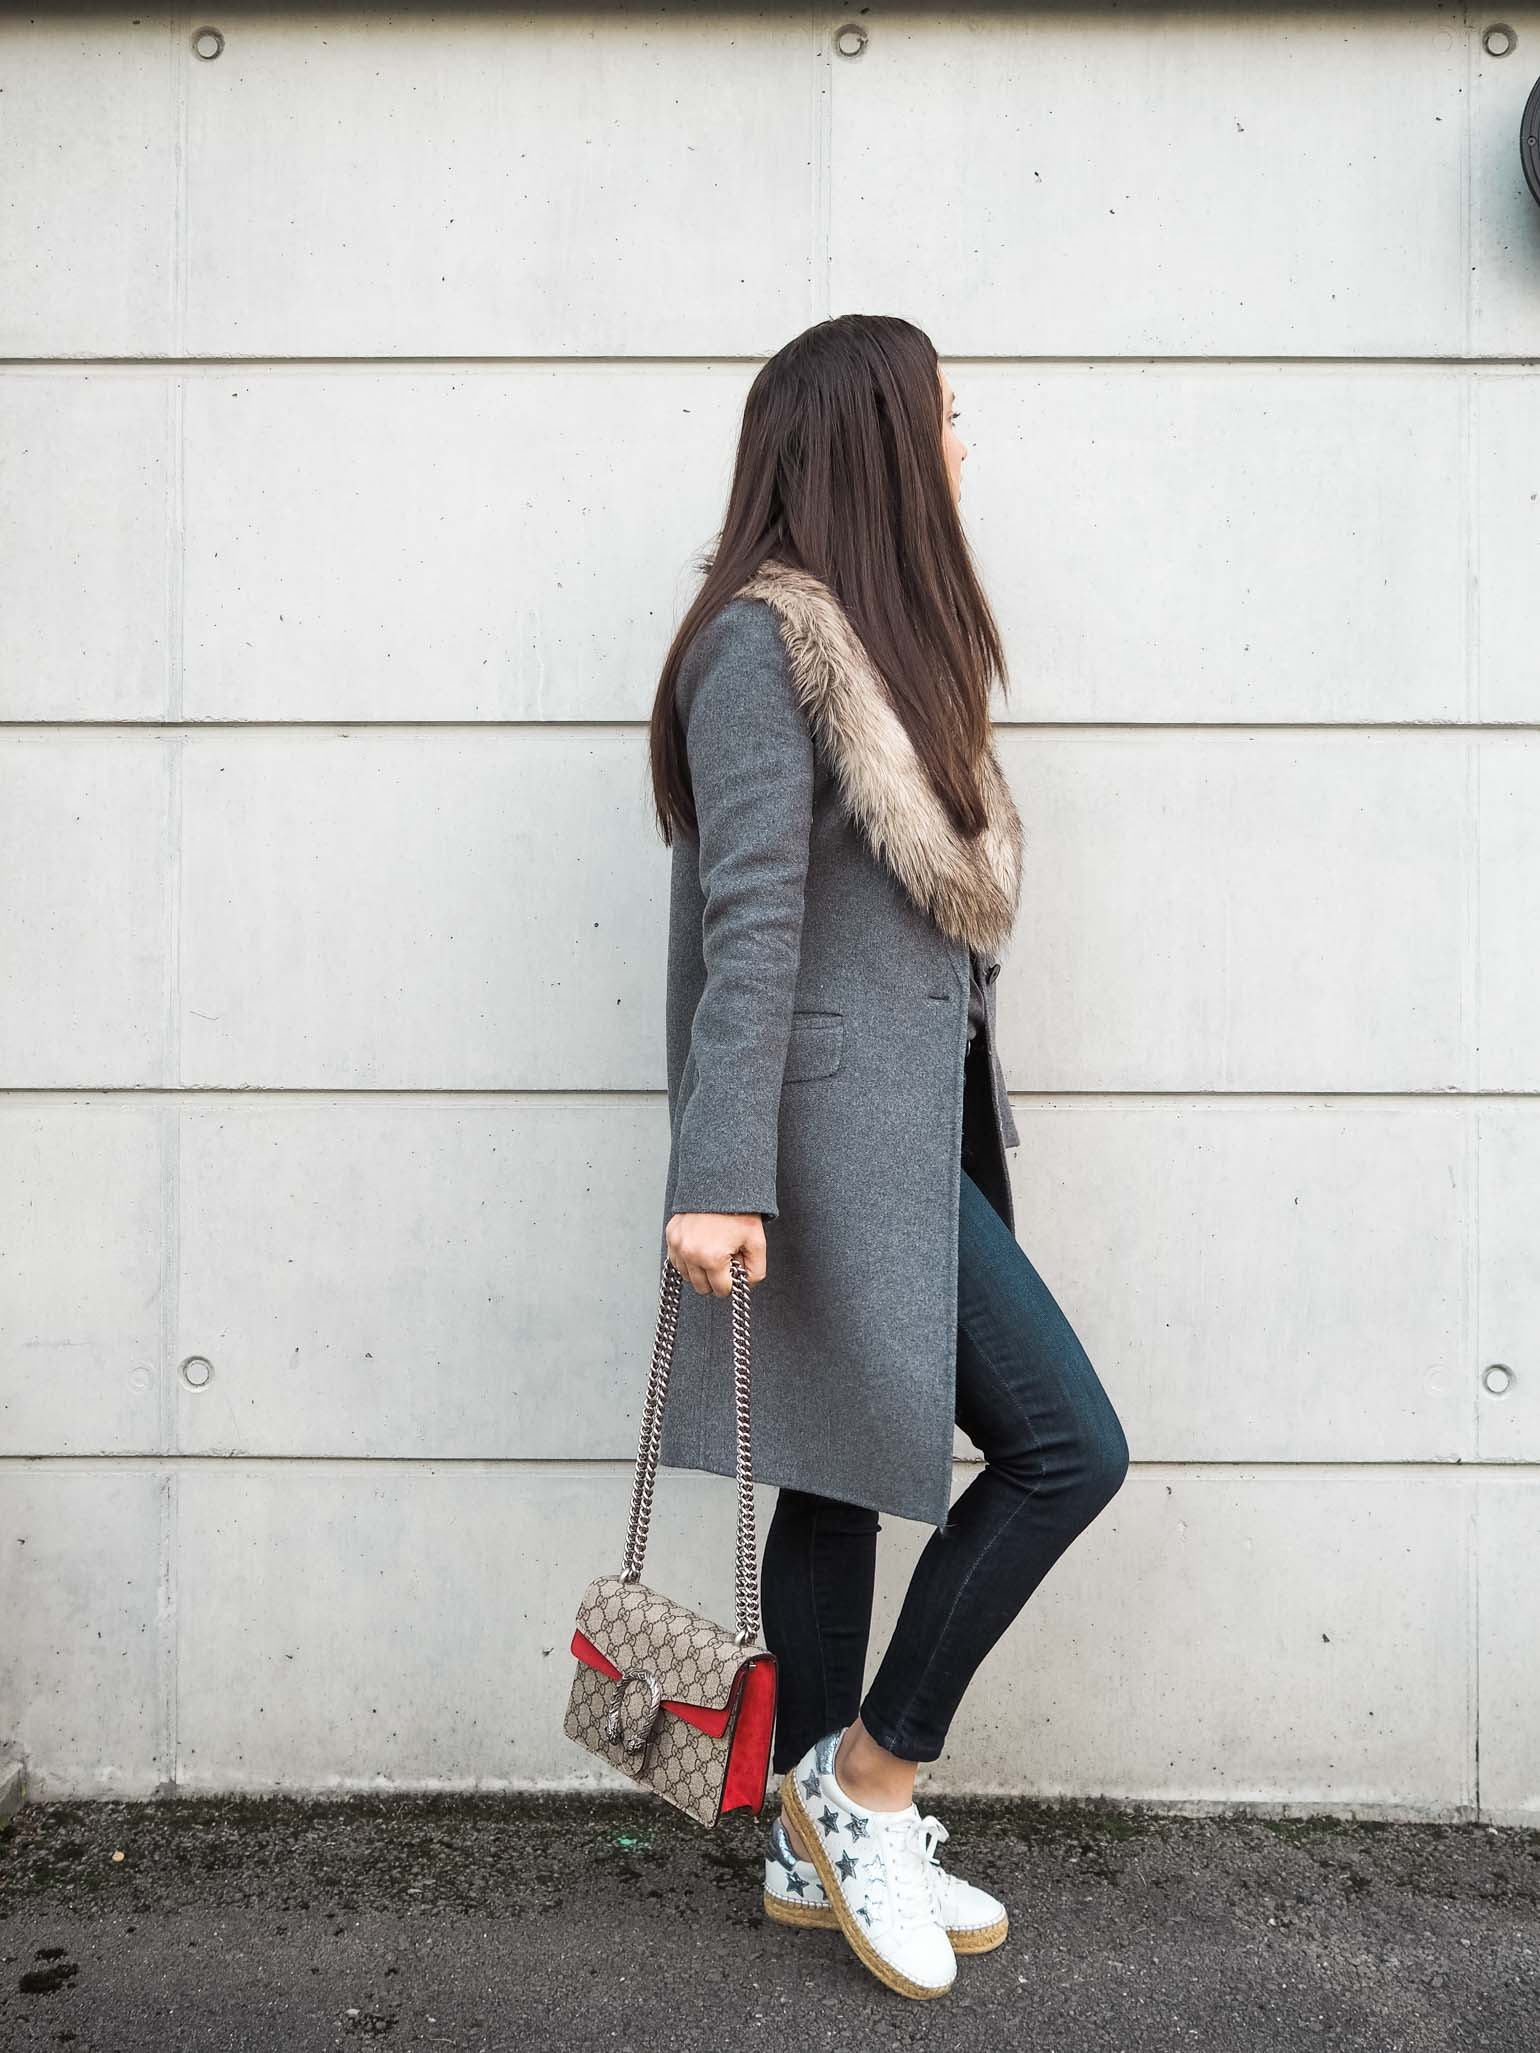 Fashion blogger Cristina of The Brunette Nomad is wearing a casual weekend style with faux fur